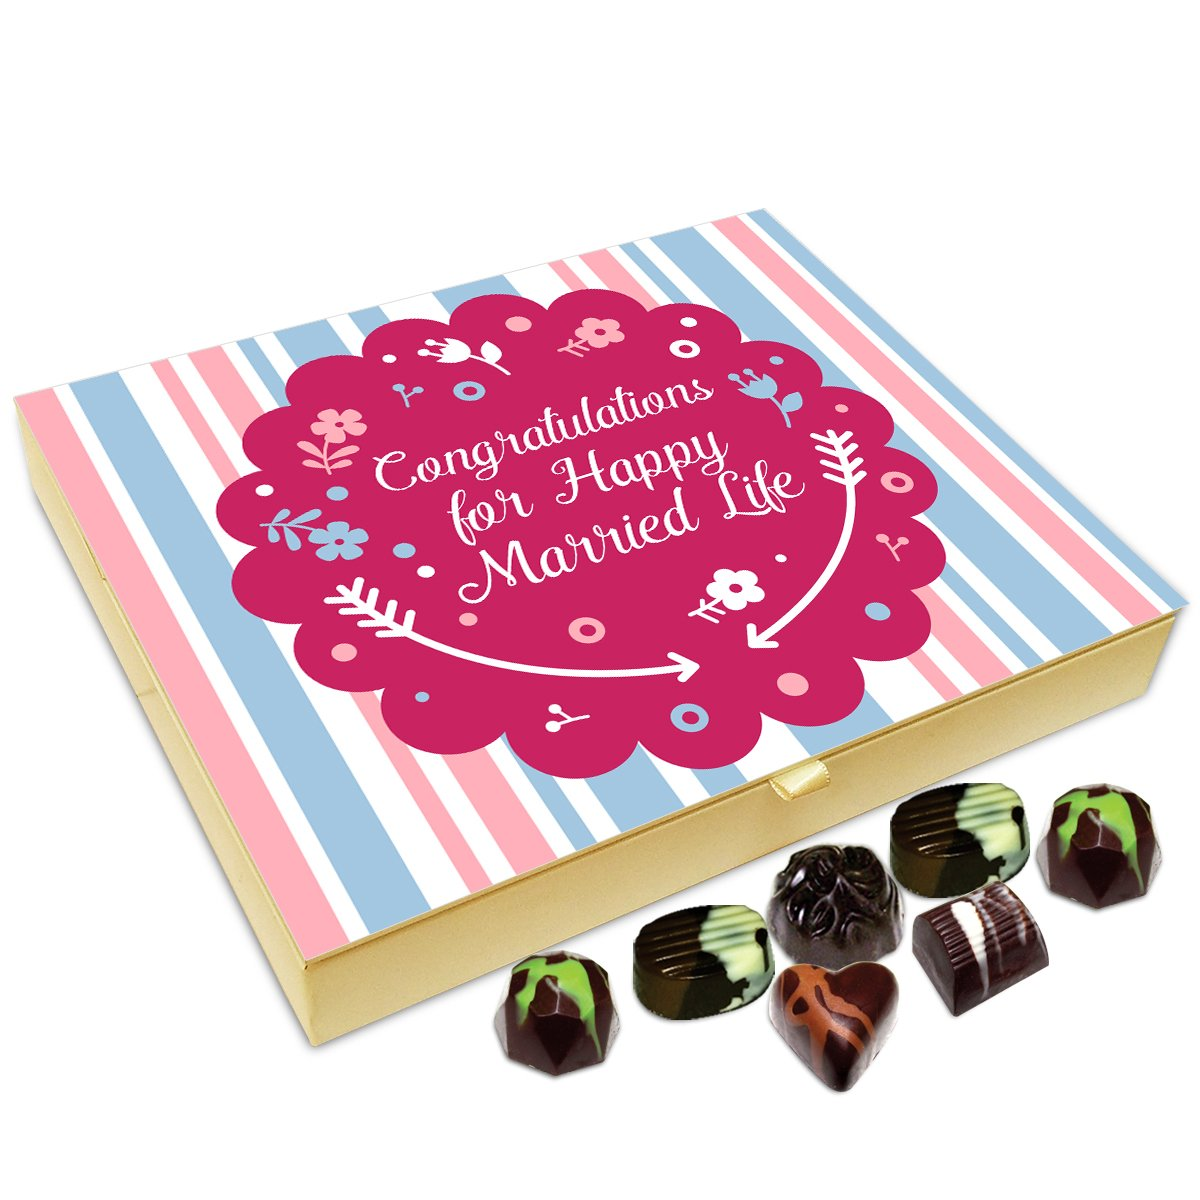 Chocholik Anniversary Gift Box – Congratulations for A Happy Married Life Chocolate Box – 20pc